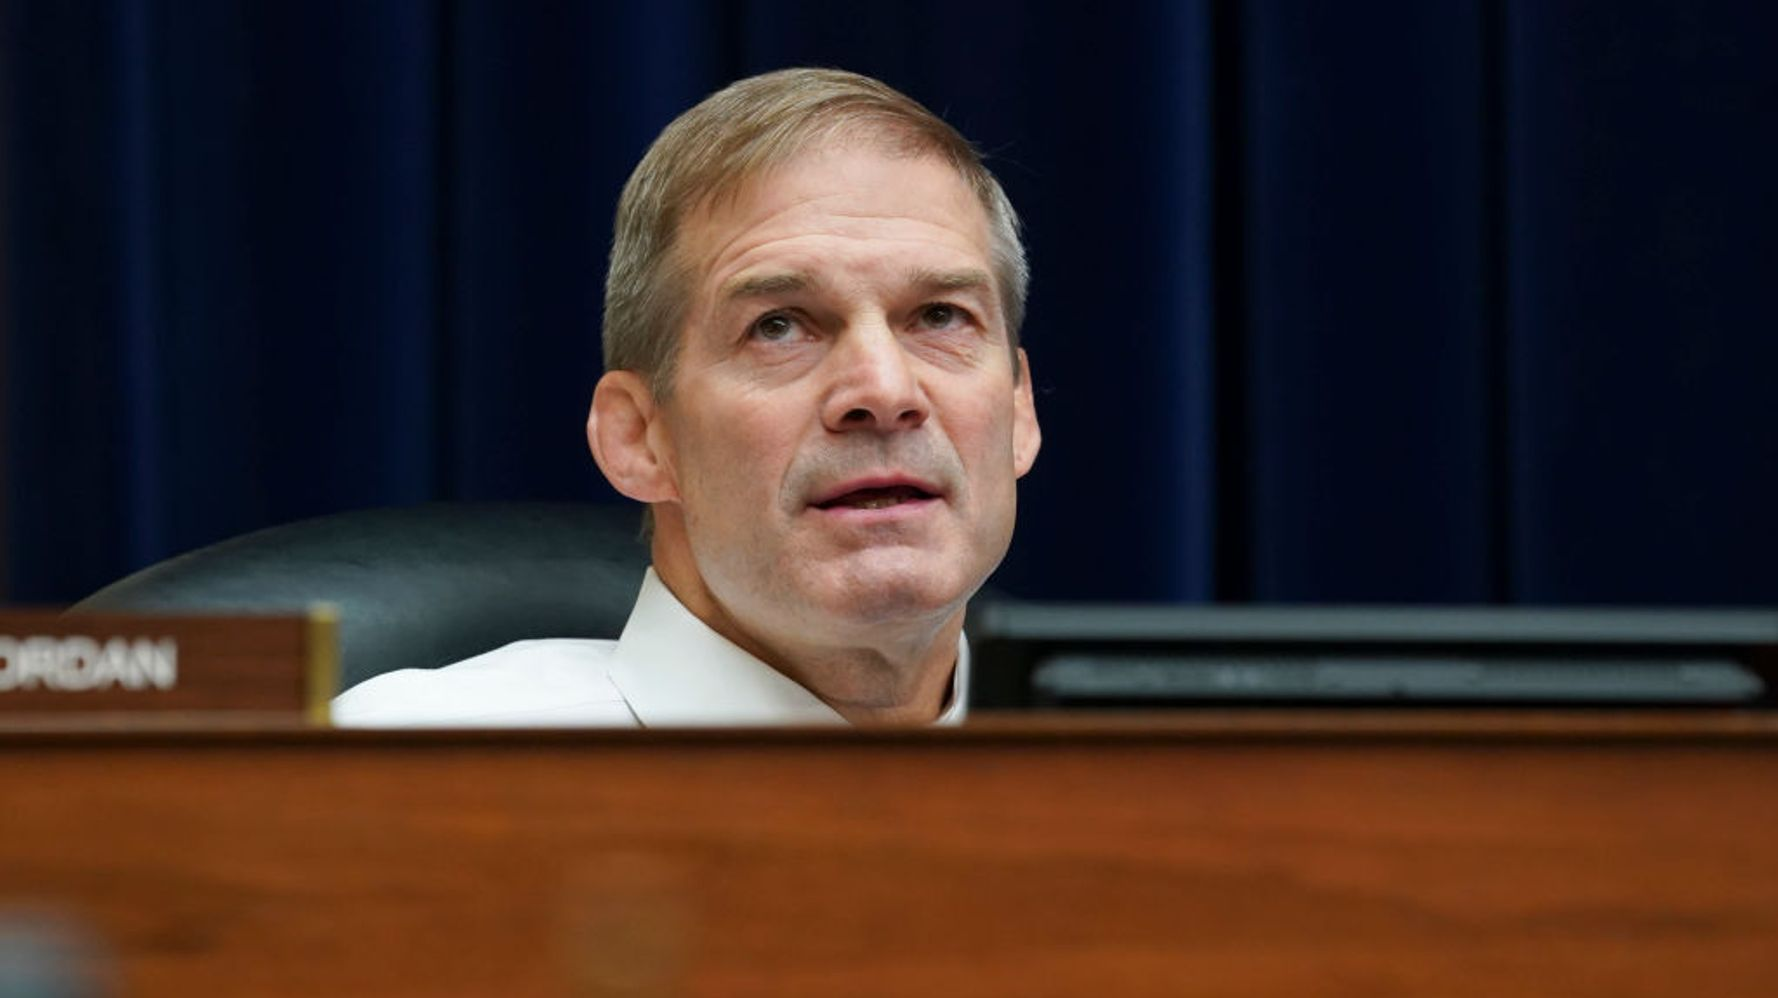 George Clooney To Produce Docuseries On Athlete Sex Abuse Where Jim Jordan Coached Photo